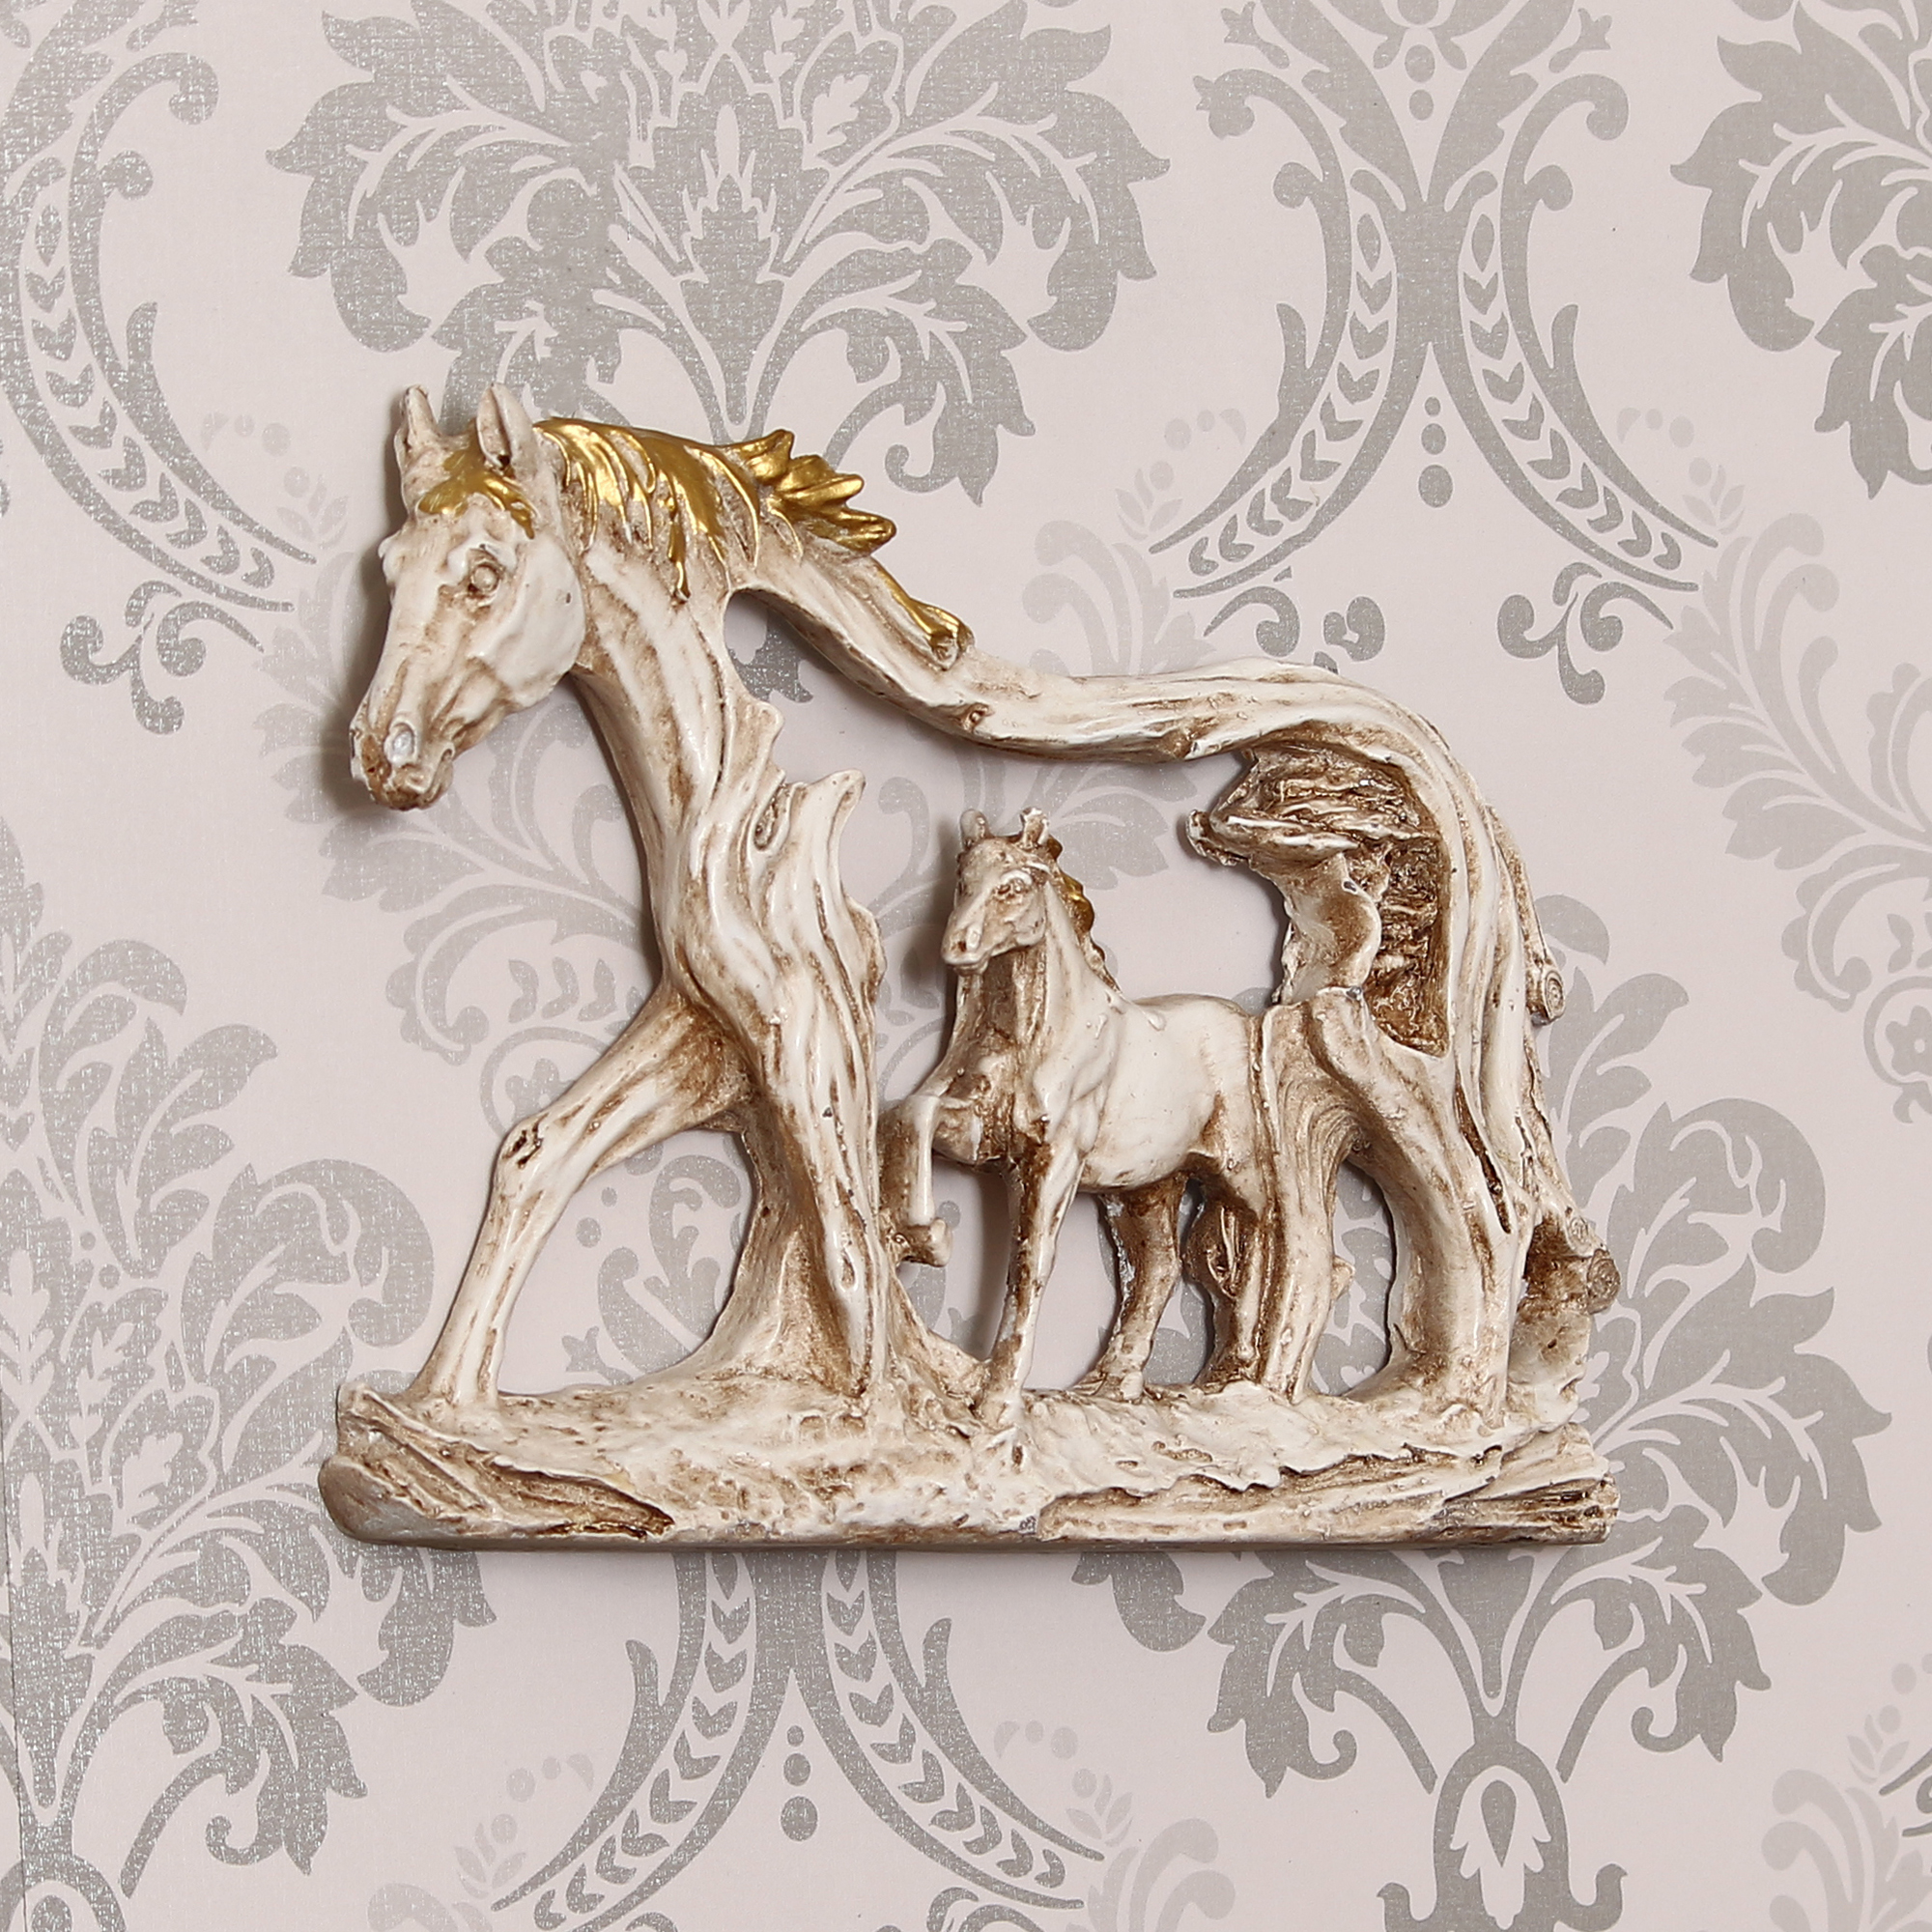 Decorative Walking Horses Polyresin Wall Hanging Showpiece Indian Home Decor